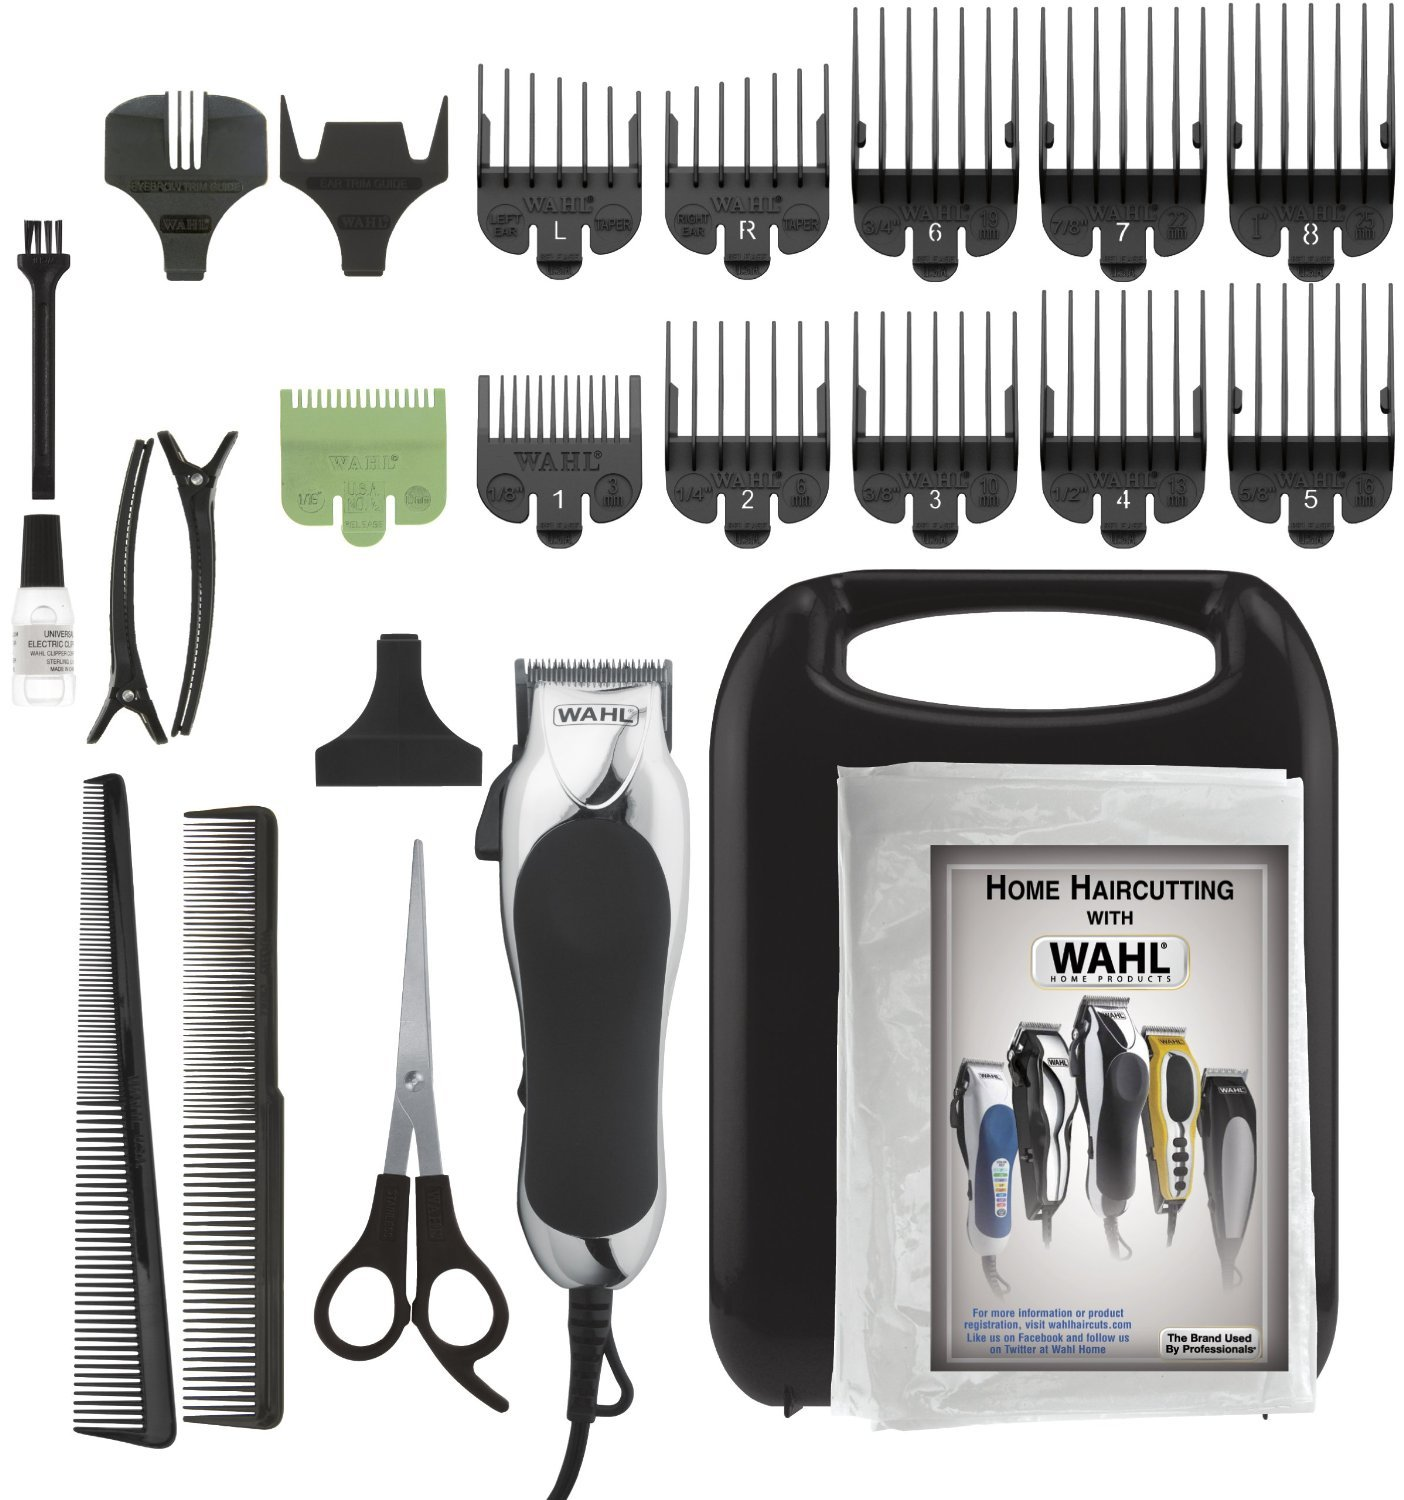 Wahl Chrome Pro 24-Piece Haircut Kit by Wahl